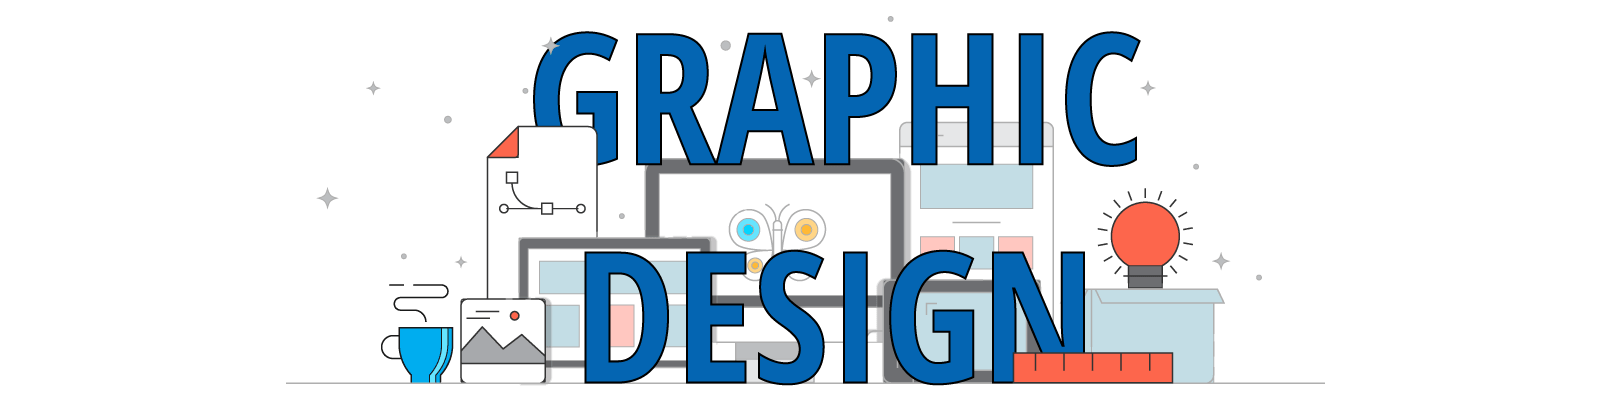 Professional Graphic Design & Branding Agency Manchester